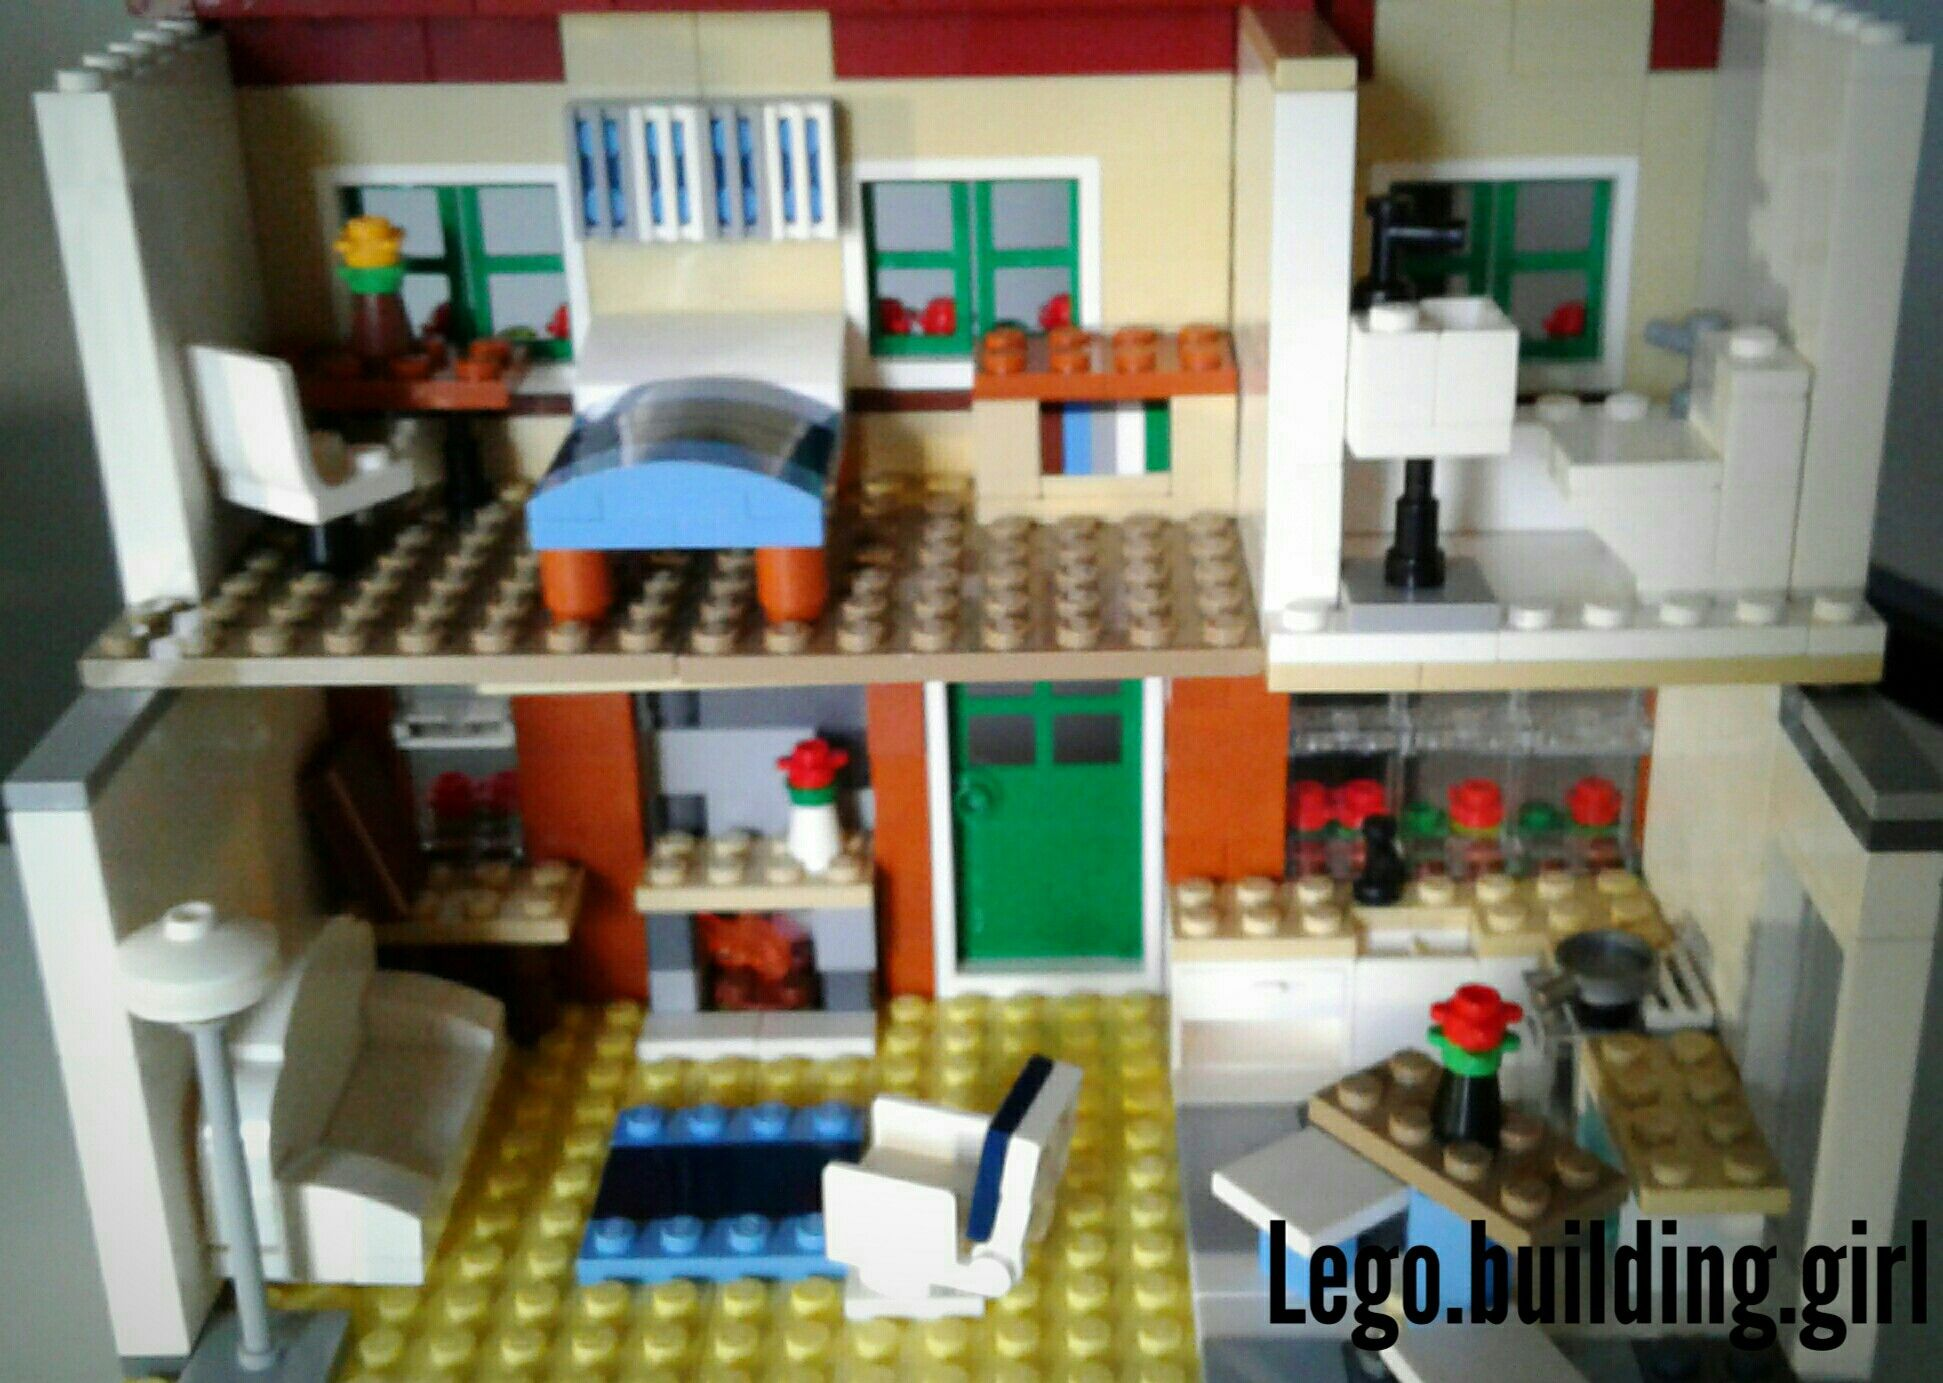 Lego House Interior By Lego.building.girl Part 2